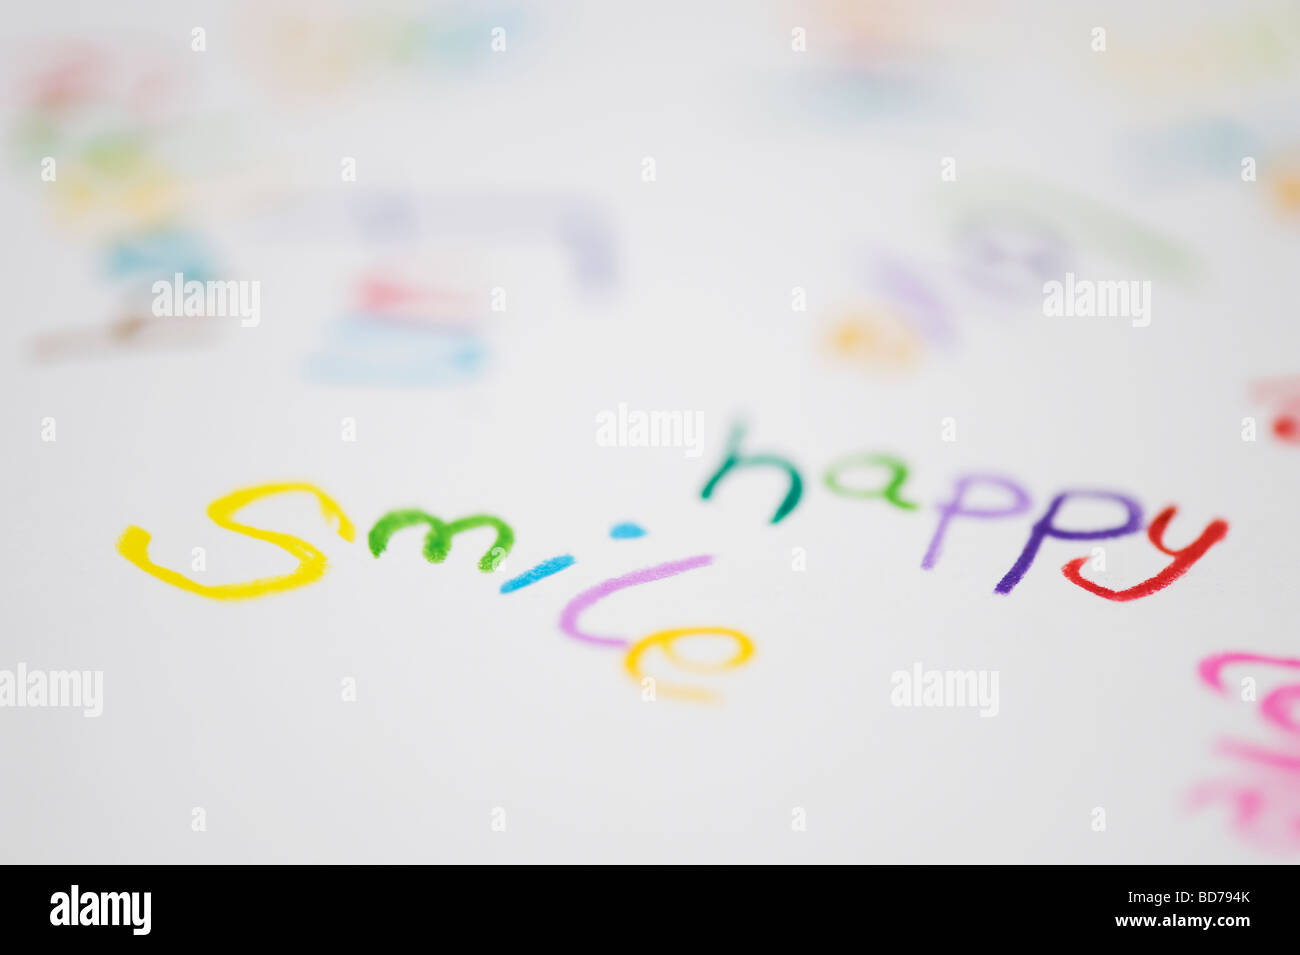 Coloured word smile, happy and love on paper written in colouring pencils - Stock Image